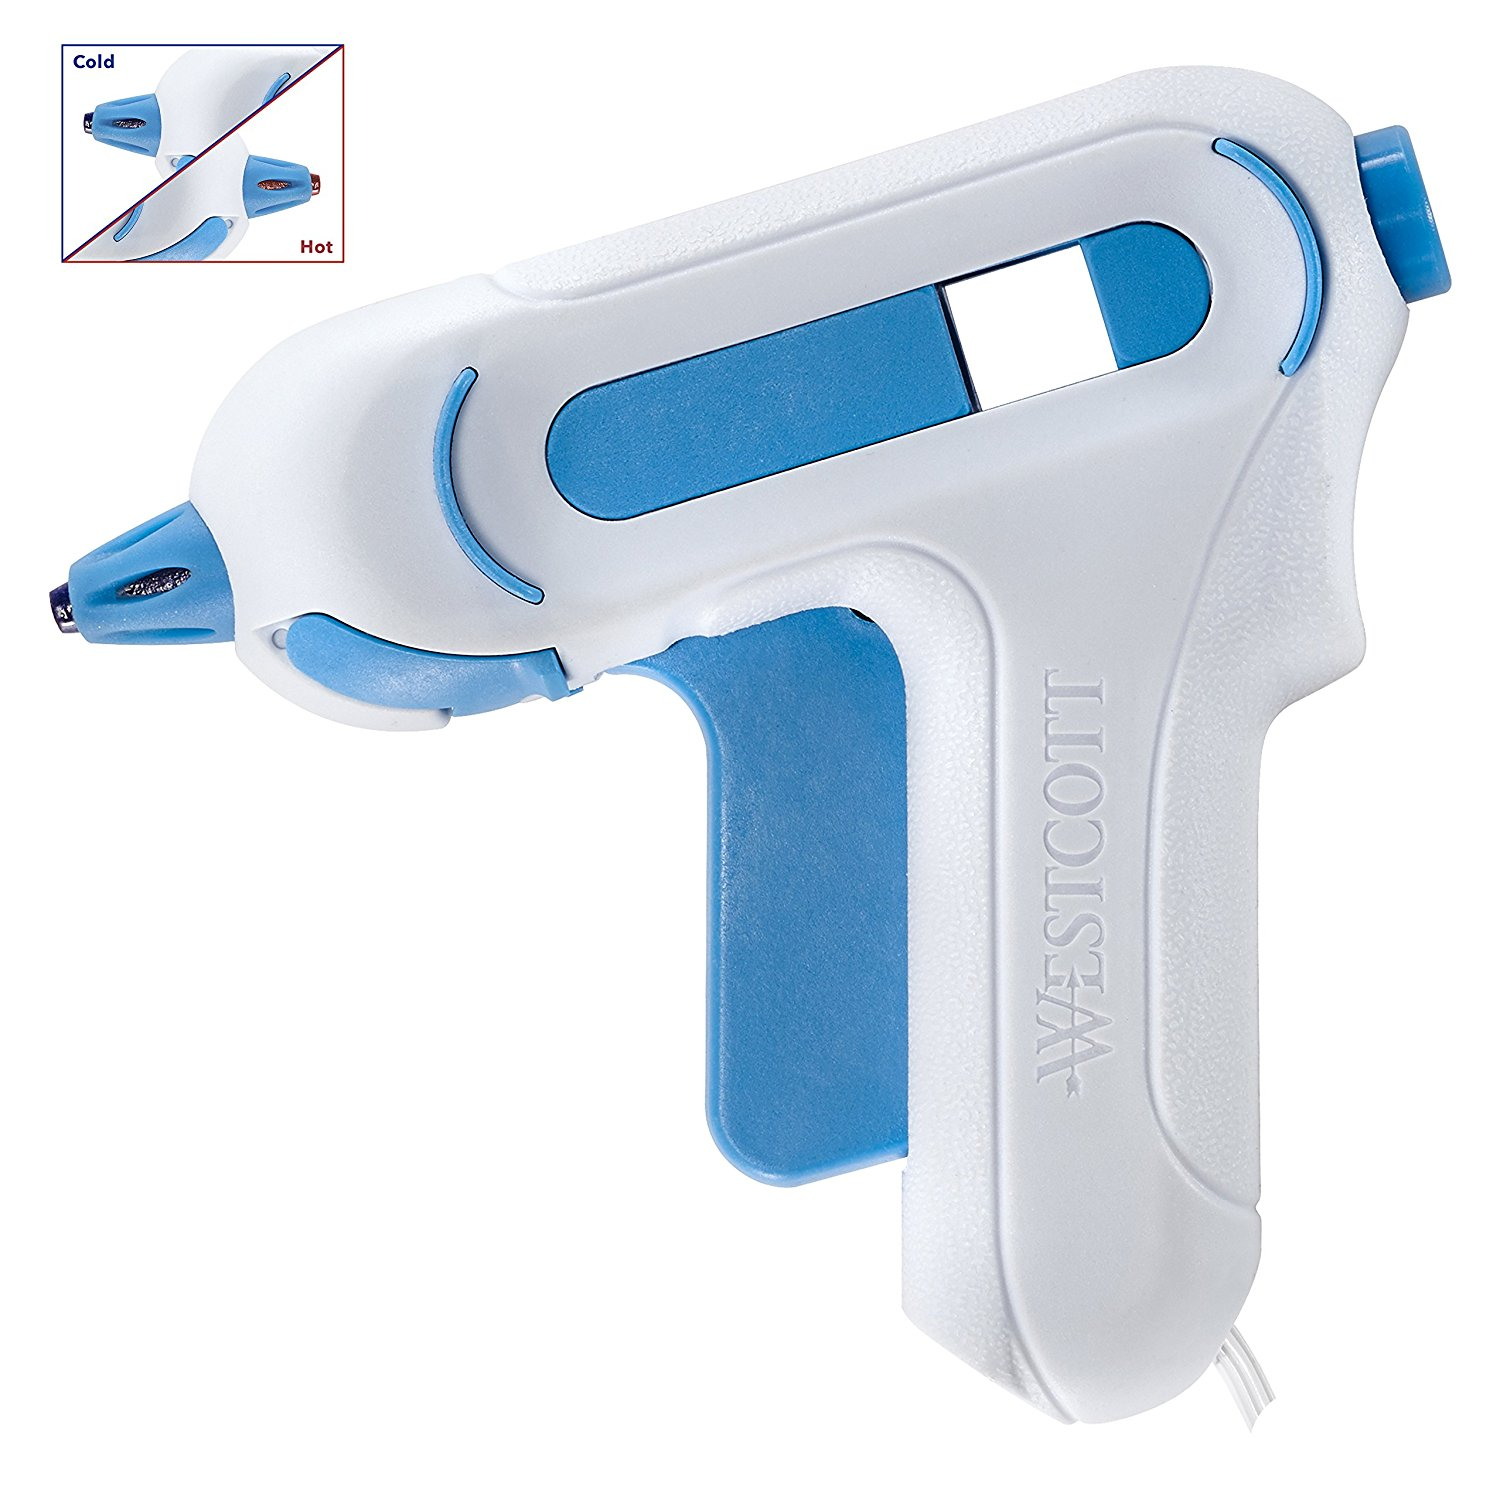 Westcott Premium Mini Hot Glue Gun, Low Temp